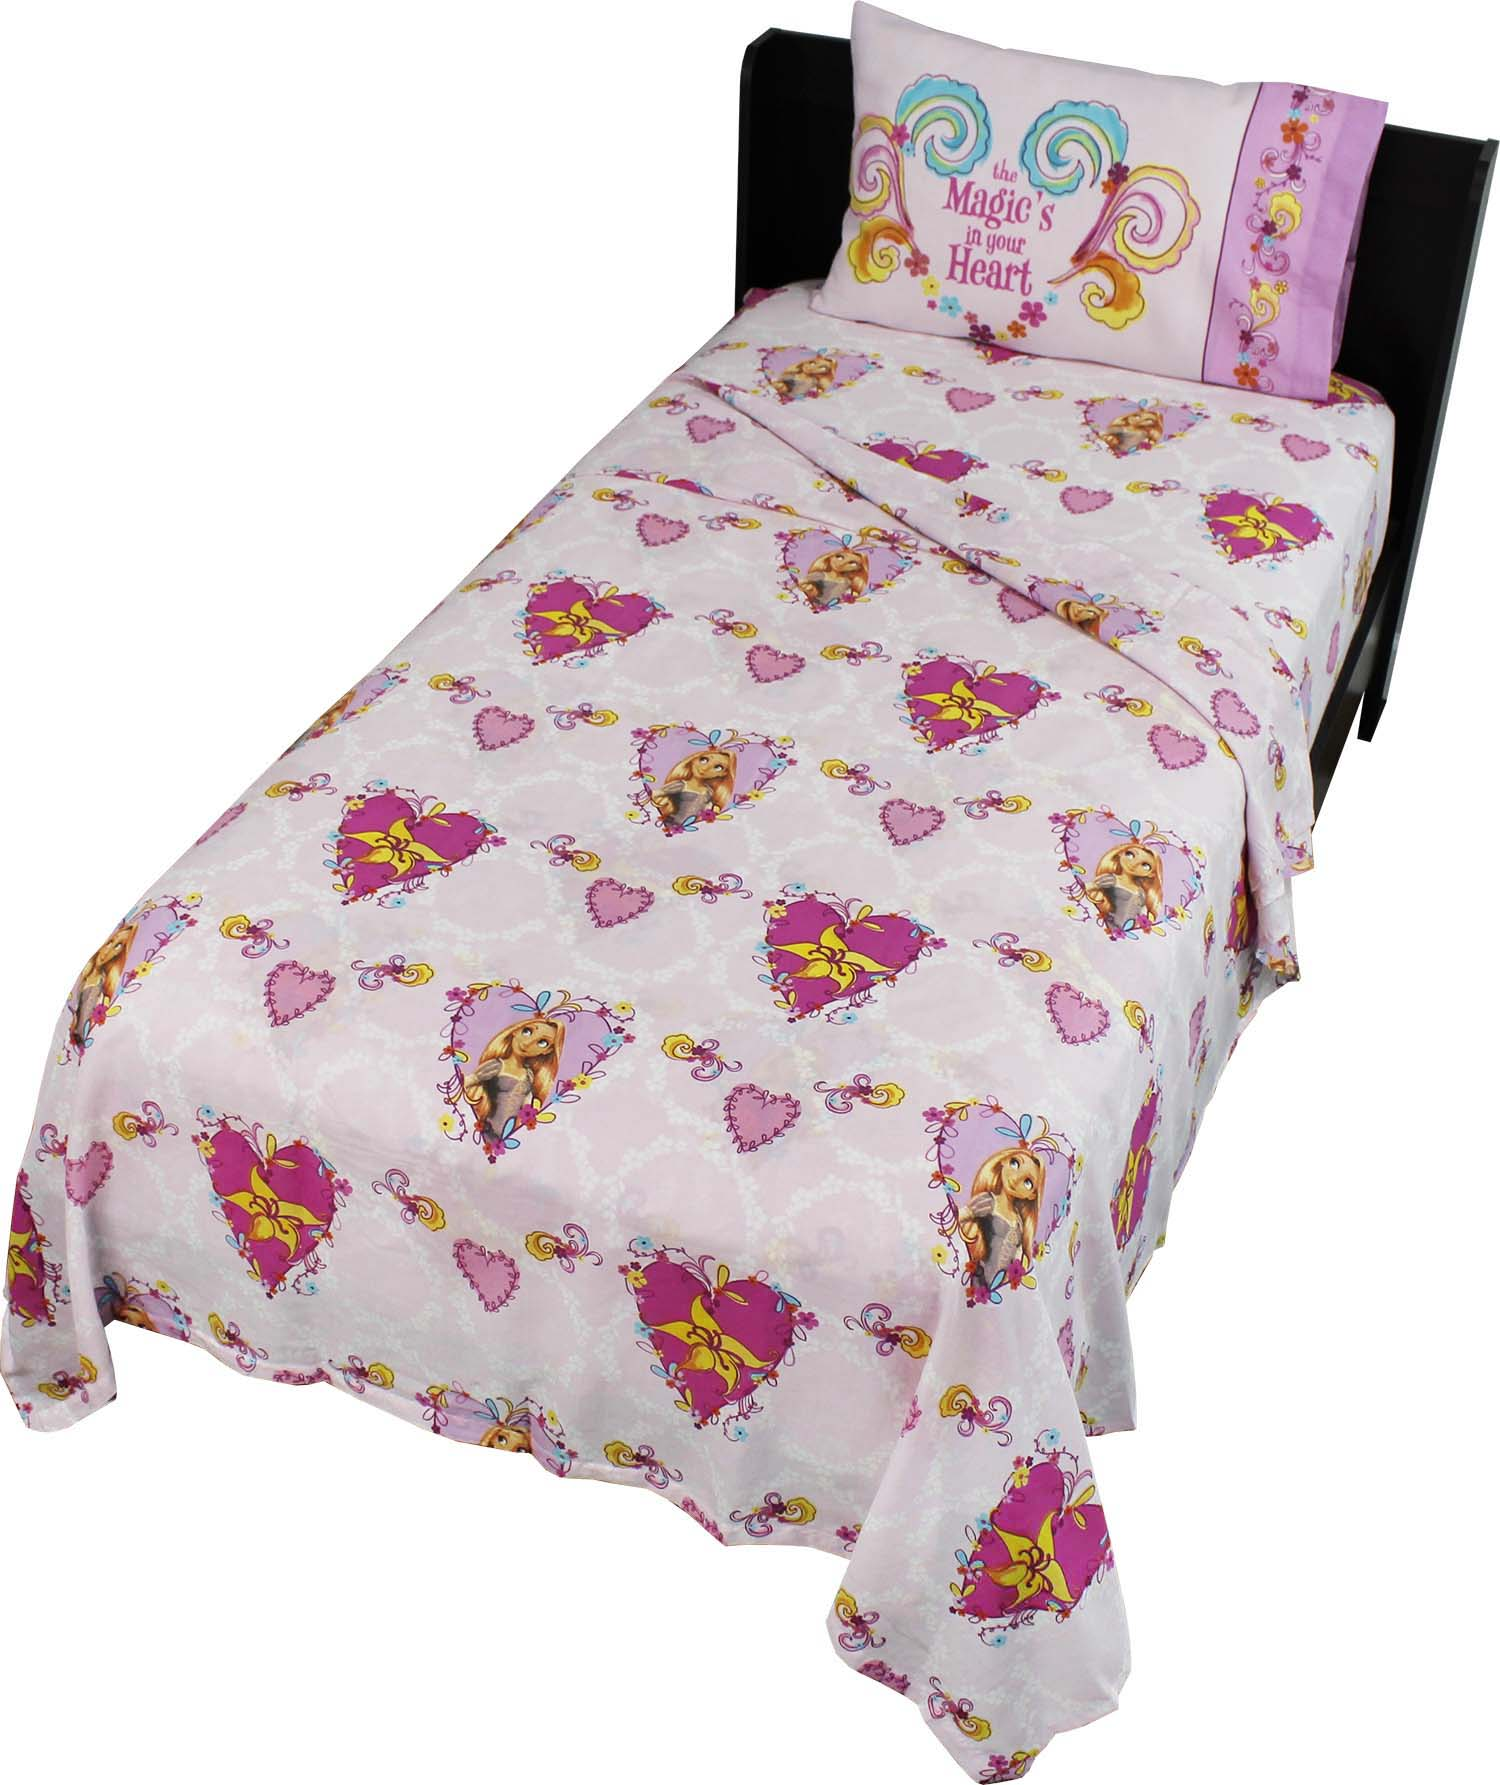 Miami Dolphins Bedroom Set Disney Princess White Bedroom Fur Picture On Sale 21865 465844742 Nfl Football Miami Dolphins